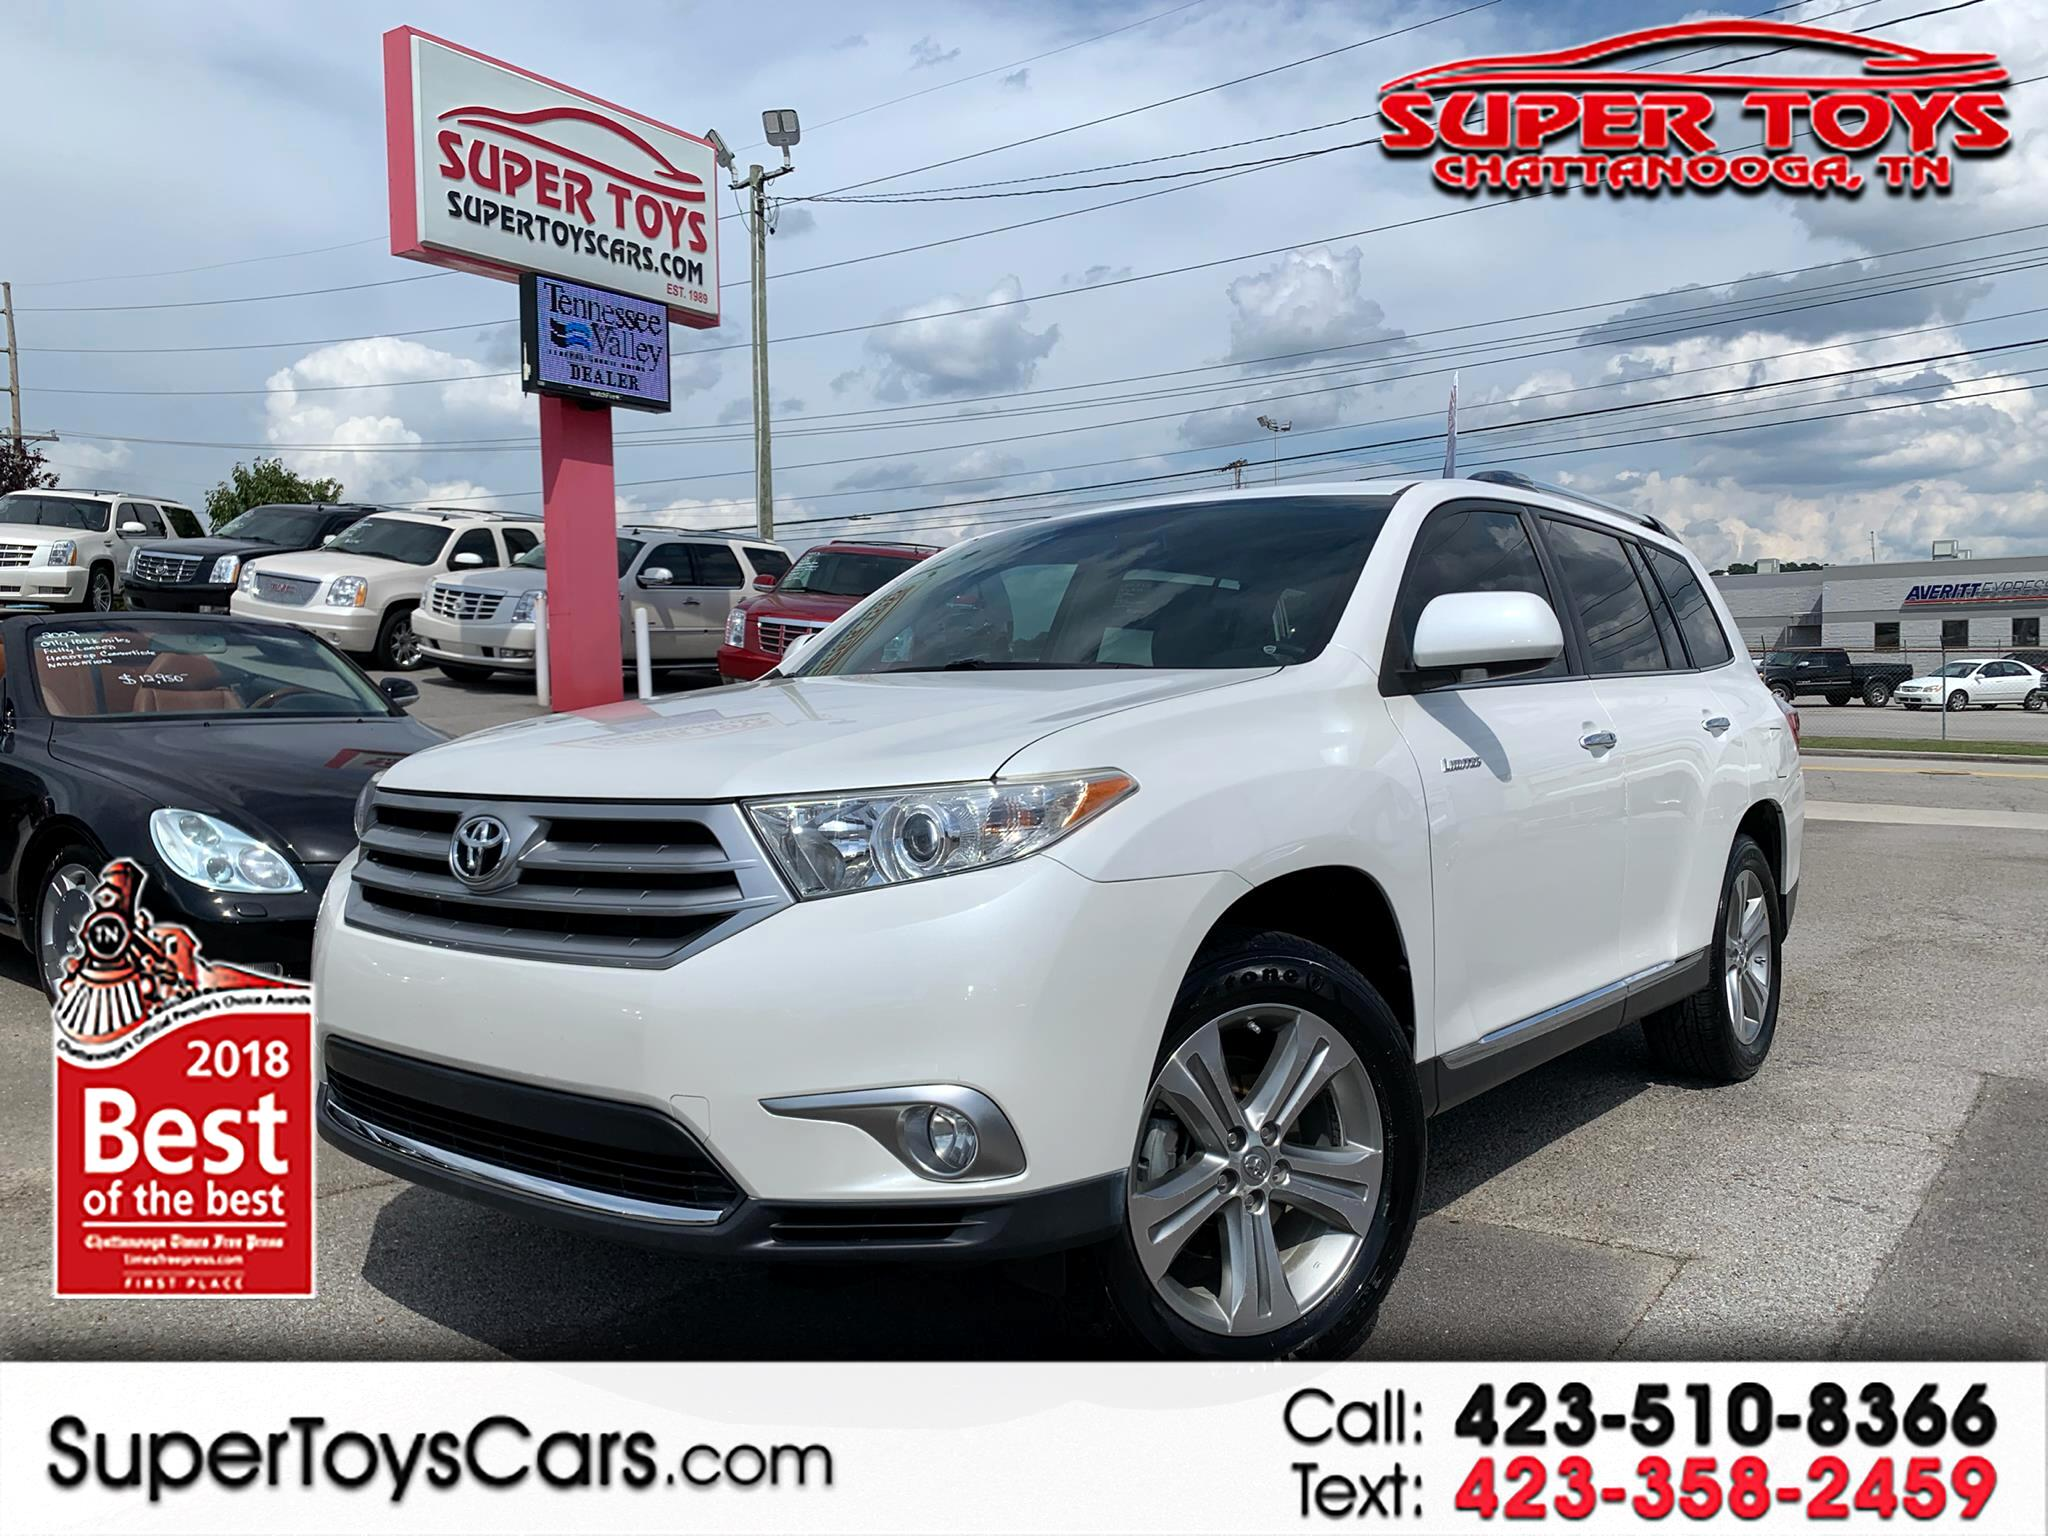 2011 Toyota Highlander FWD 4dr V6  Limited (Natl)